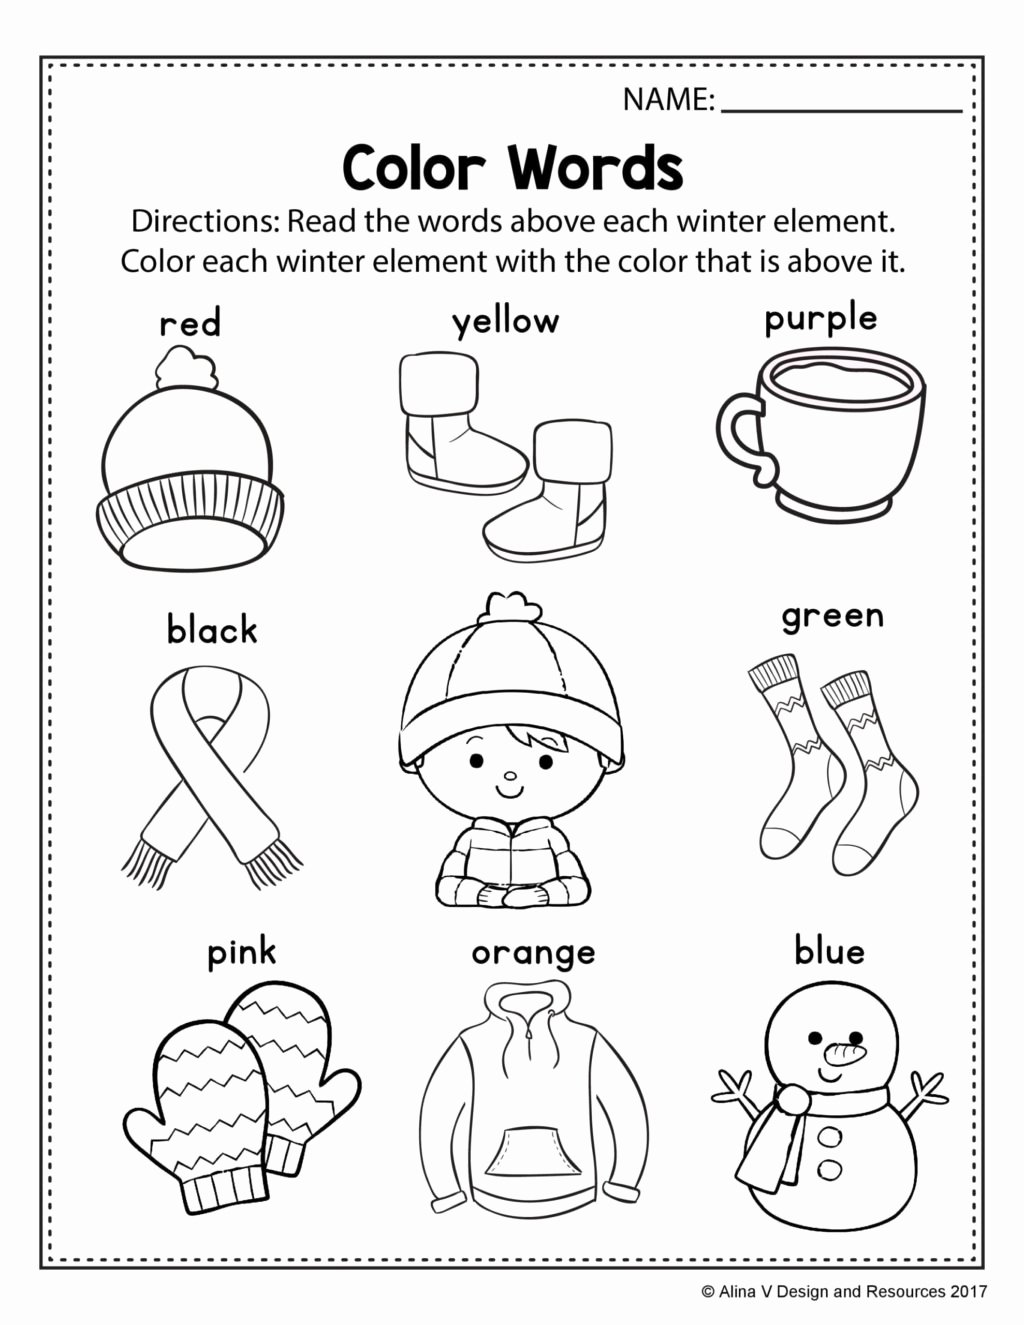 Coloring Activity Worksheets for Preschoolers Lovely Free Coloring Printables for Preschoolers Outstanding